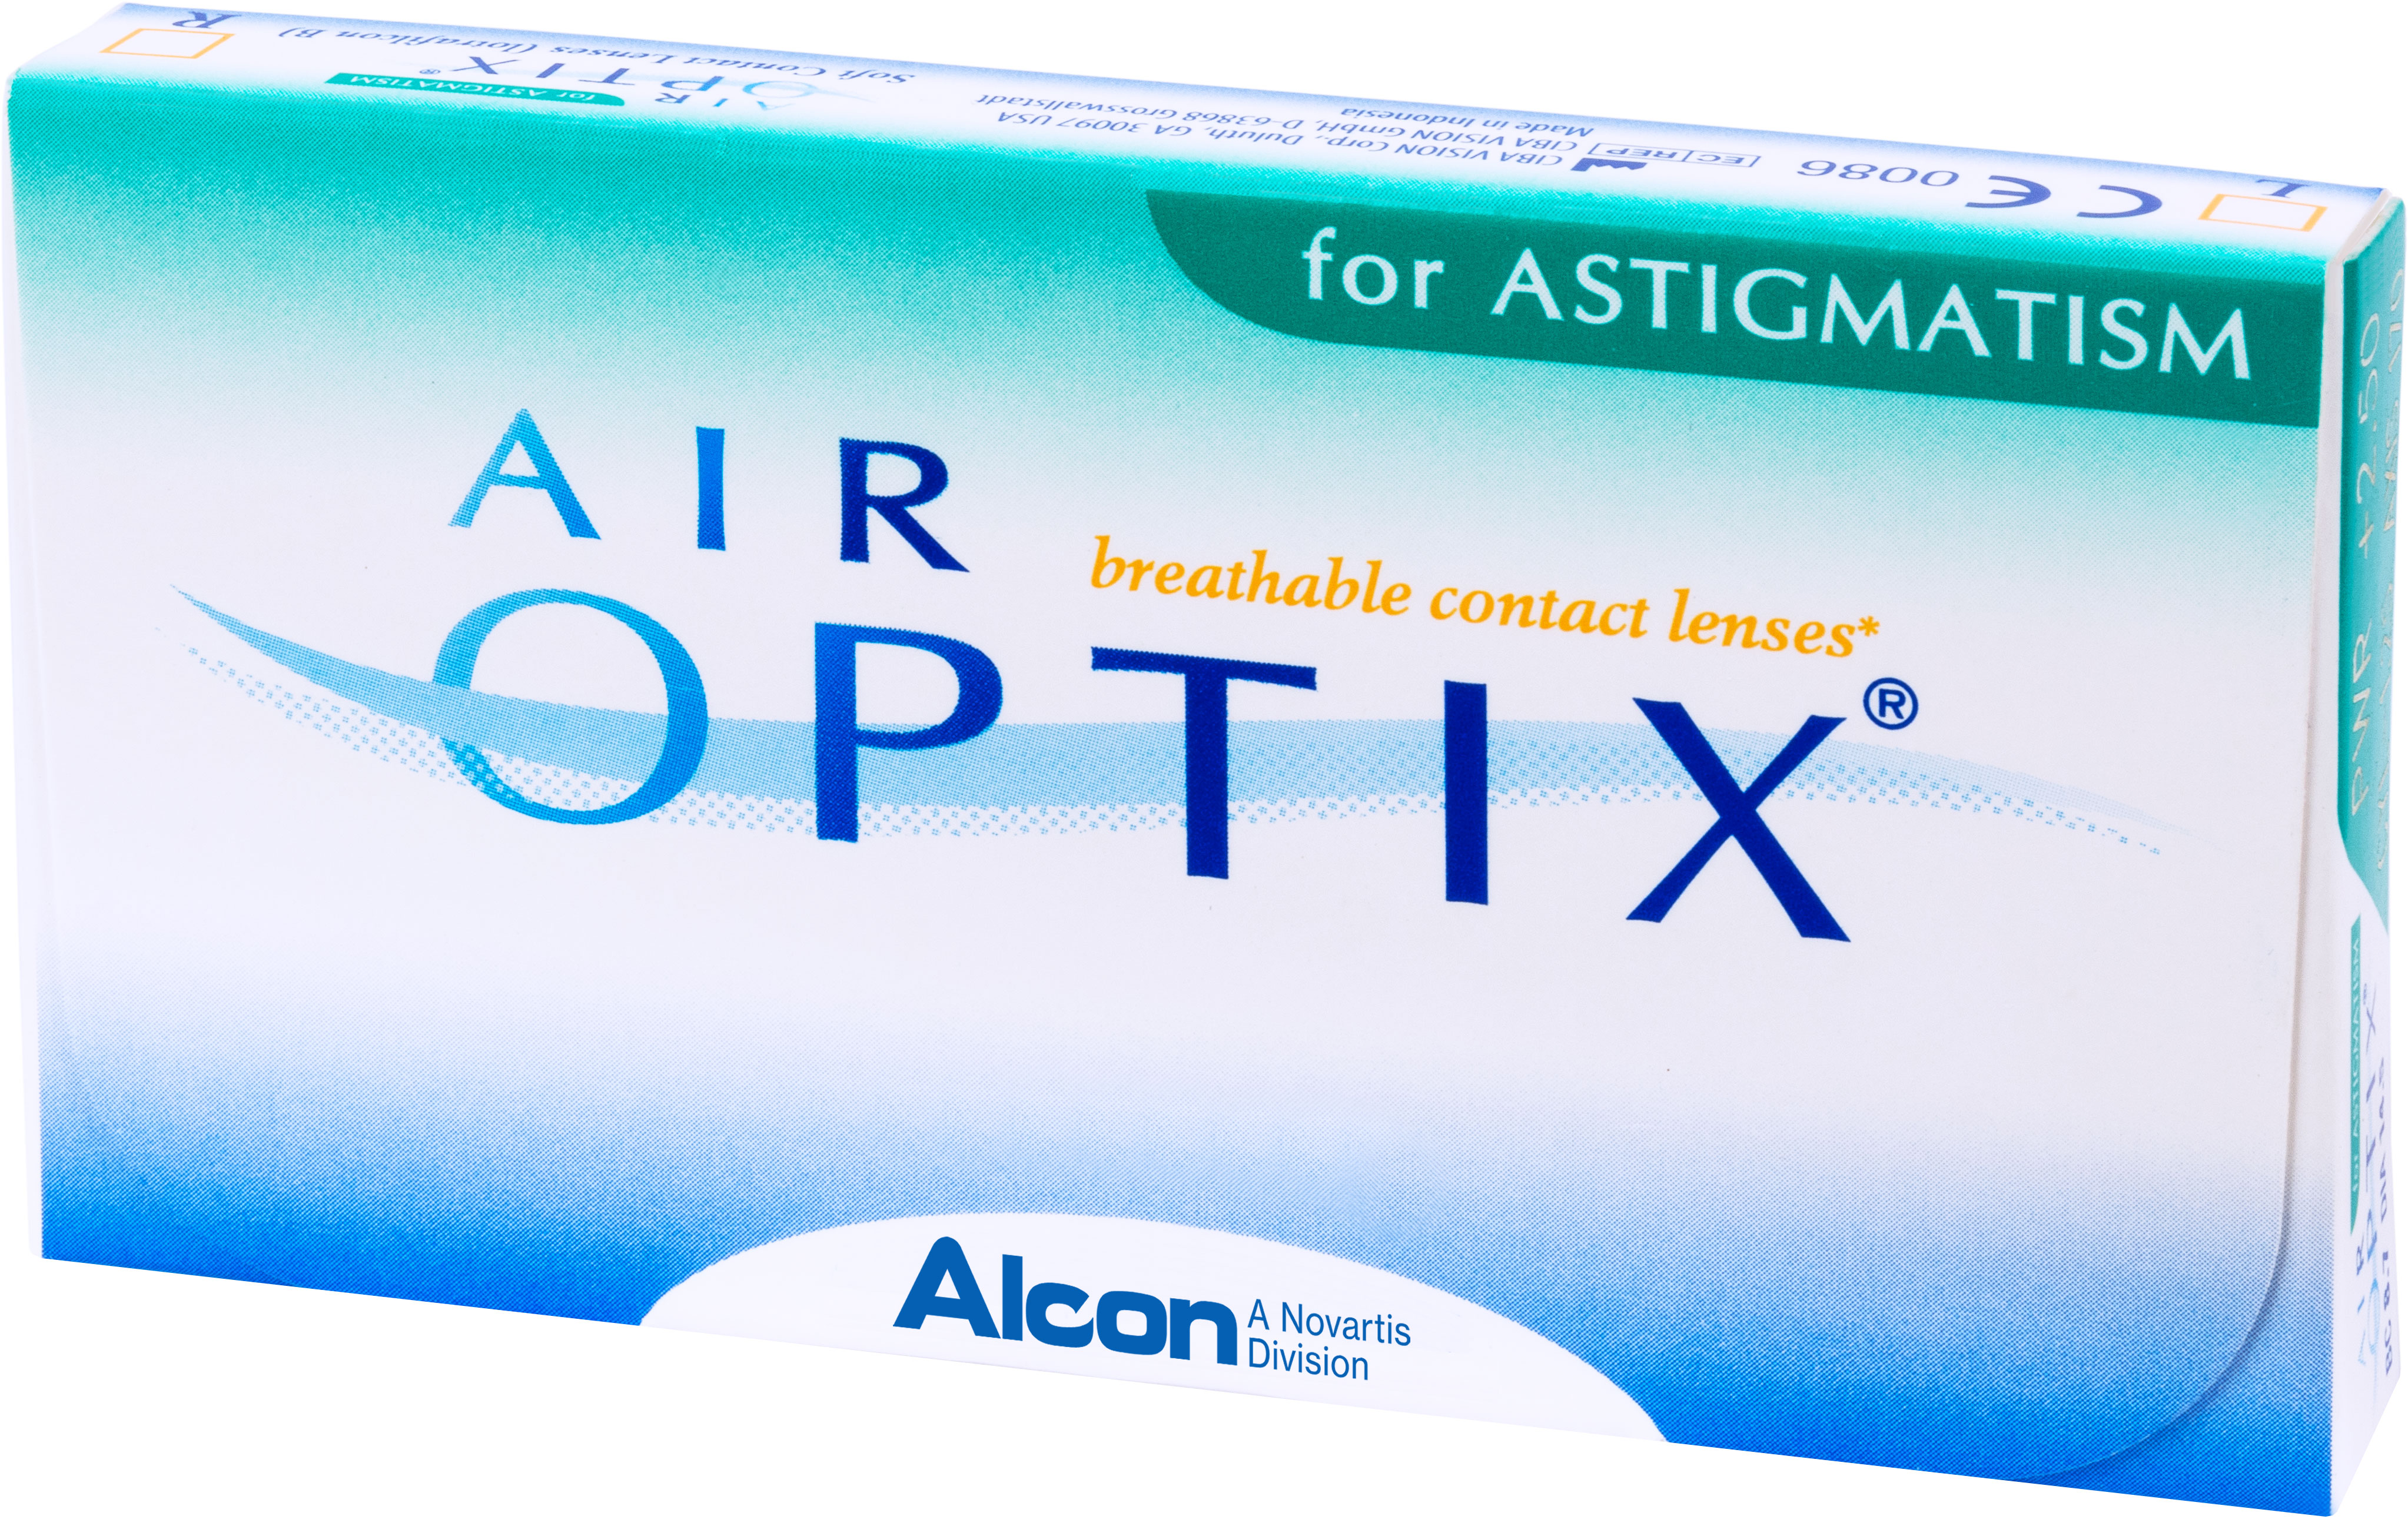 Аlcon контактные линзы Air Optix for Astigmatism 3pk /BC 8.7/DIA14.5/PWR -2.00/CYL -2.25/AXIS 70100005201with Hydraclear